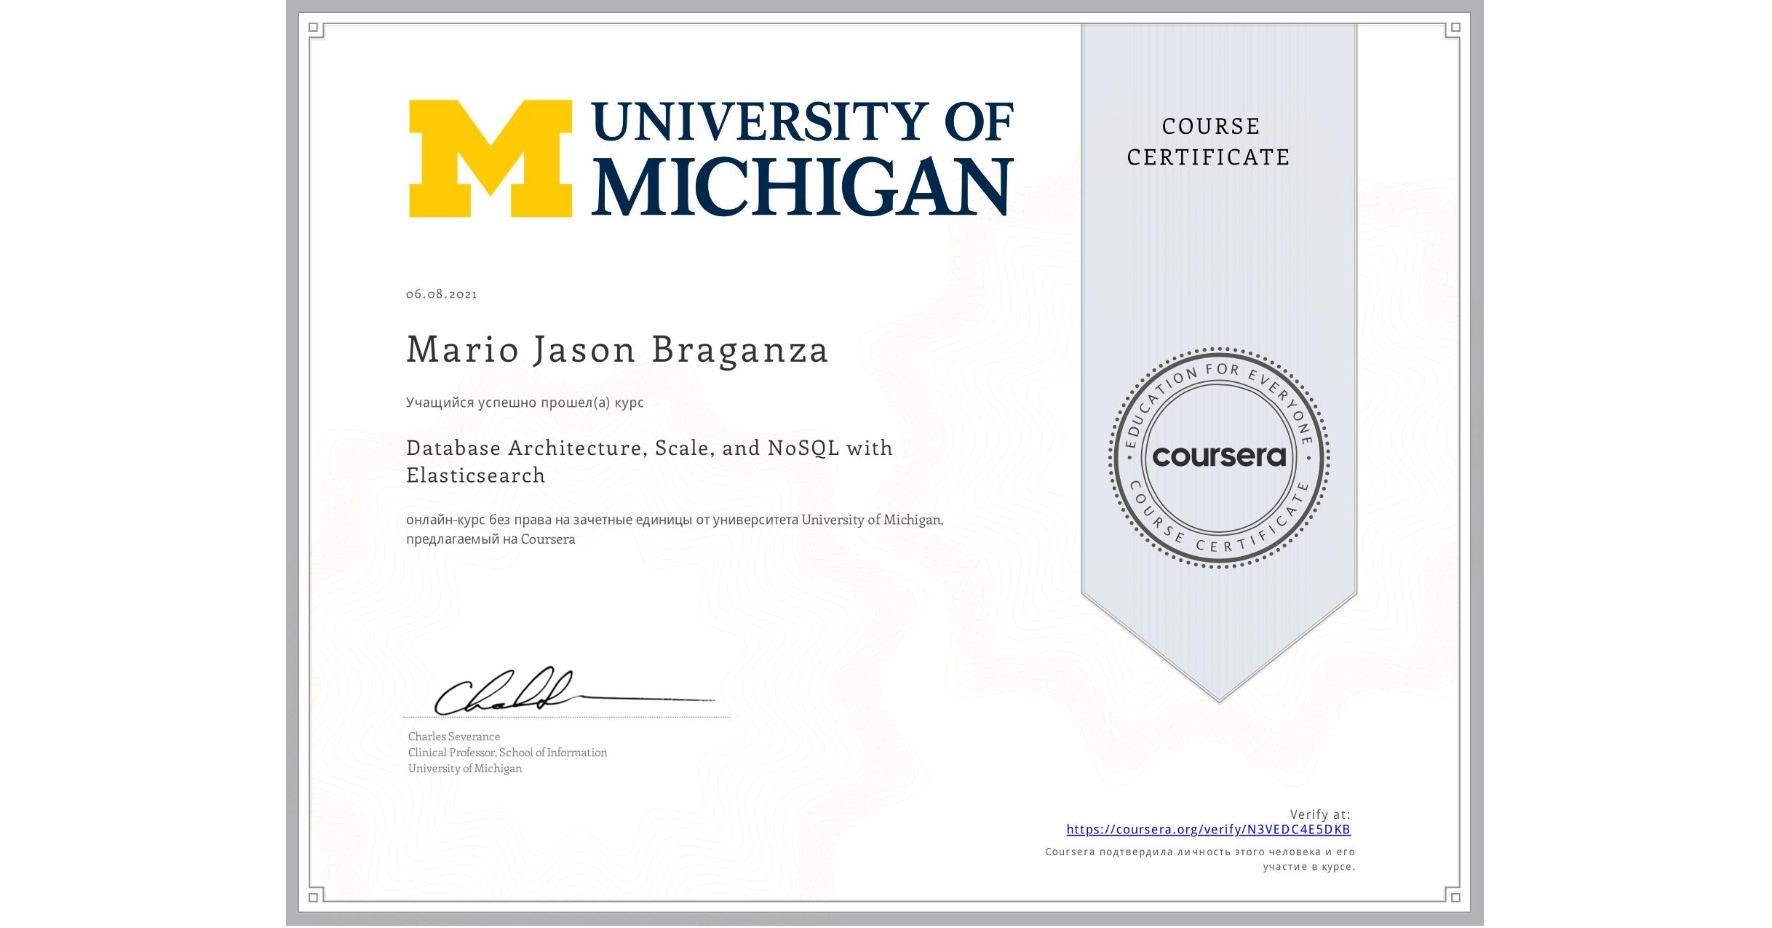 View certificate for Mario Jason Braganza, Database Architecture, Scale, and NoSQL with Elasticsearch, an online non-credit course authorized by University of Michigan and offered through Coursera